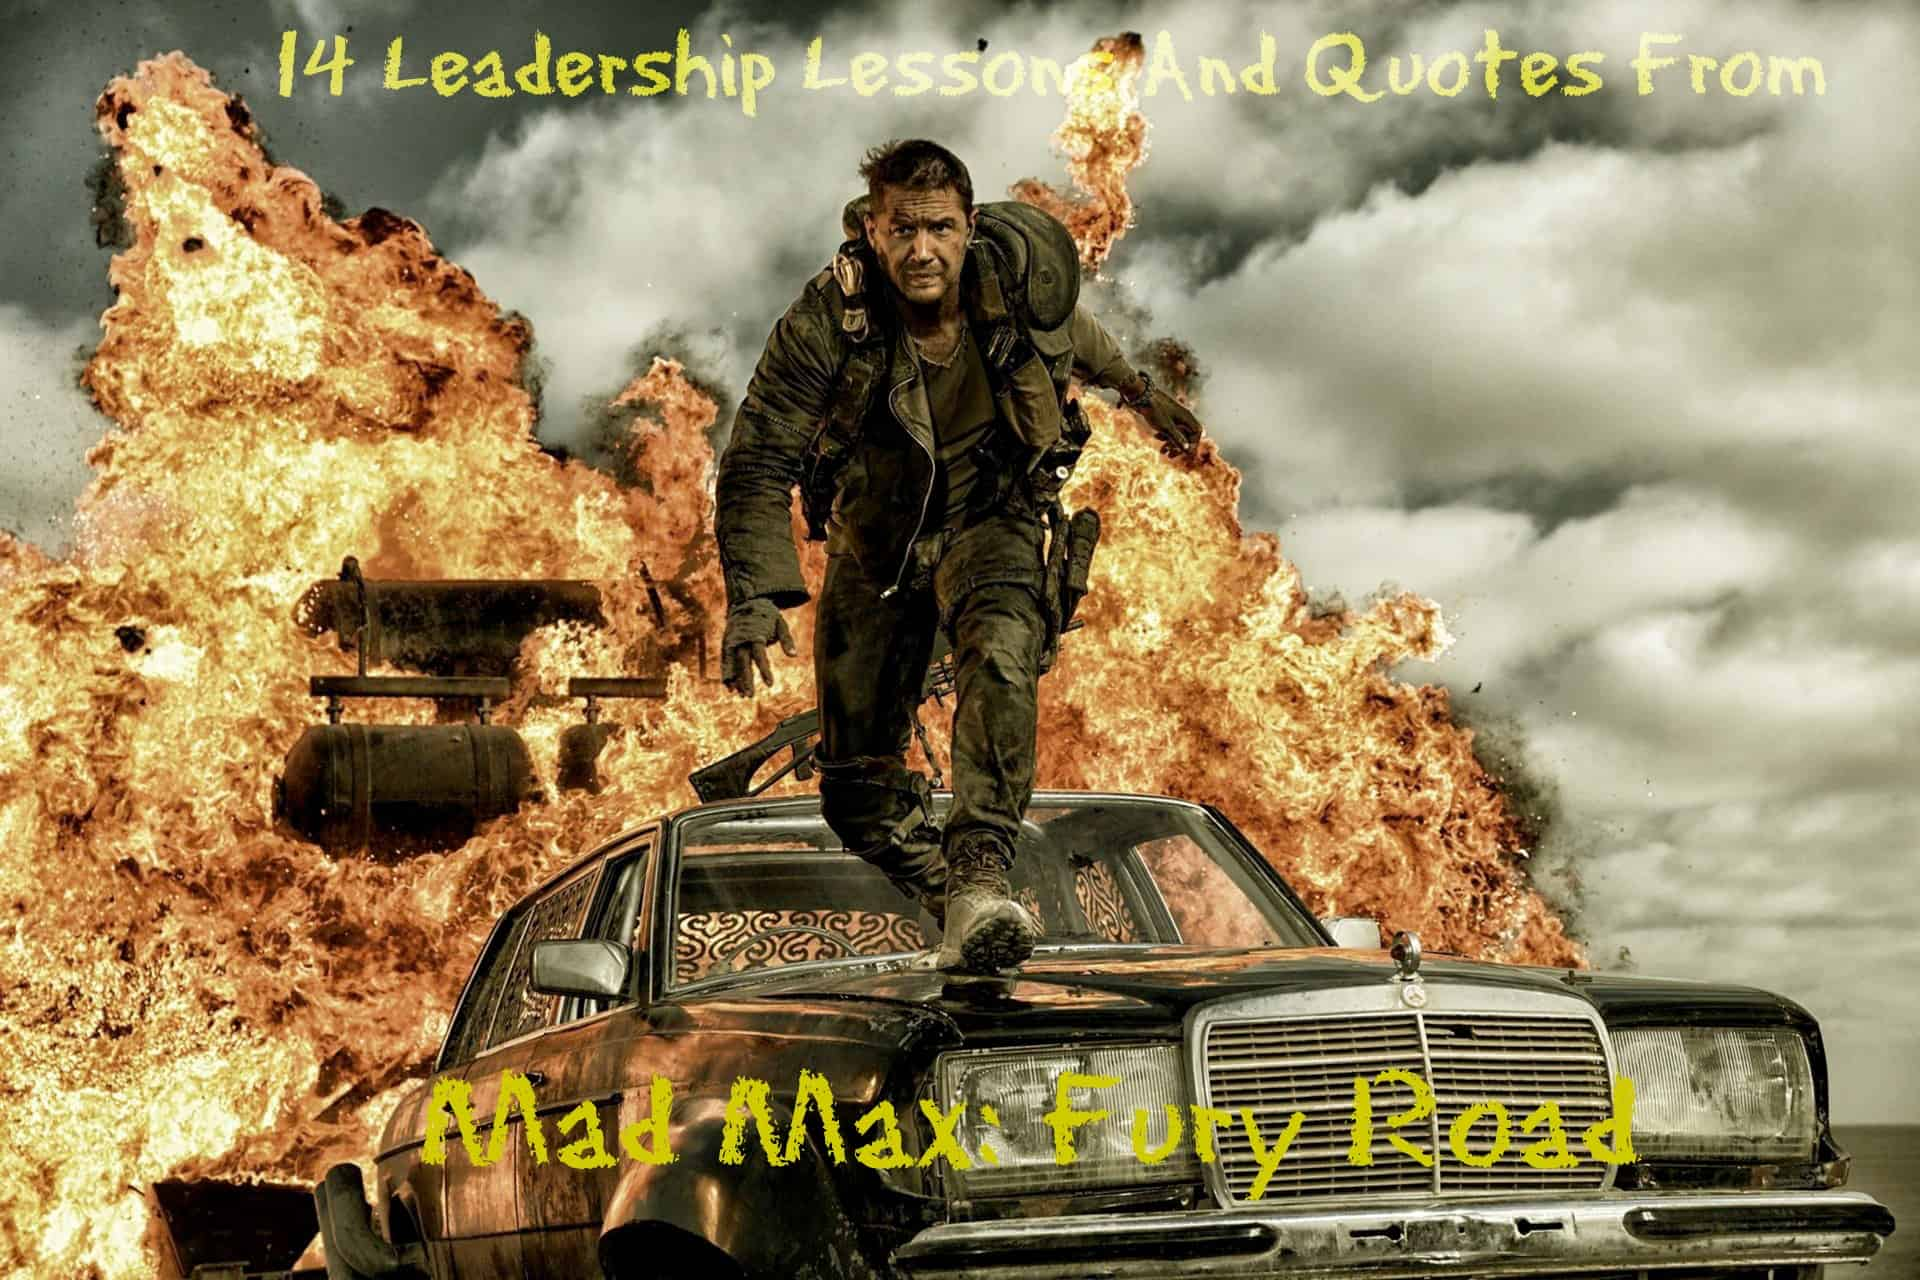 Leadership lessons and quotes from Mad Max: Fury Road